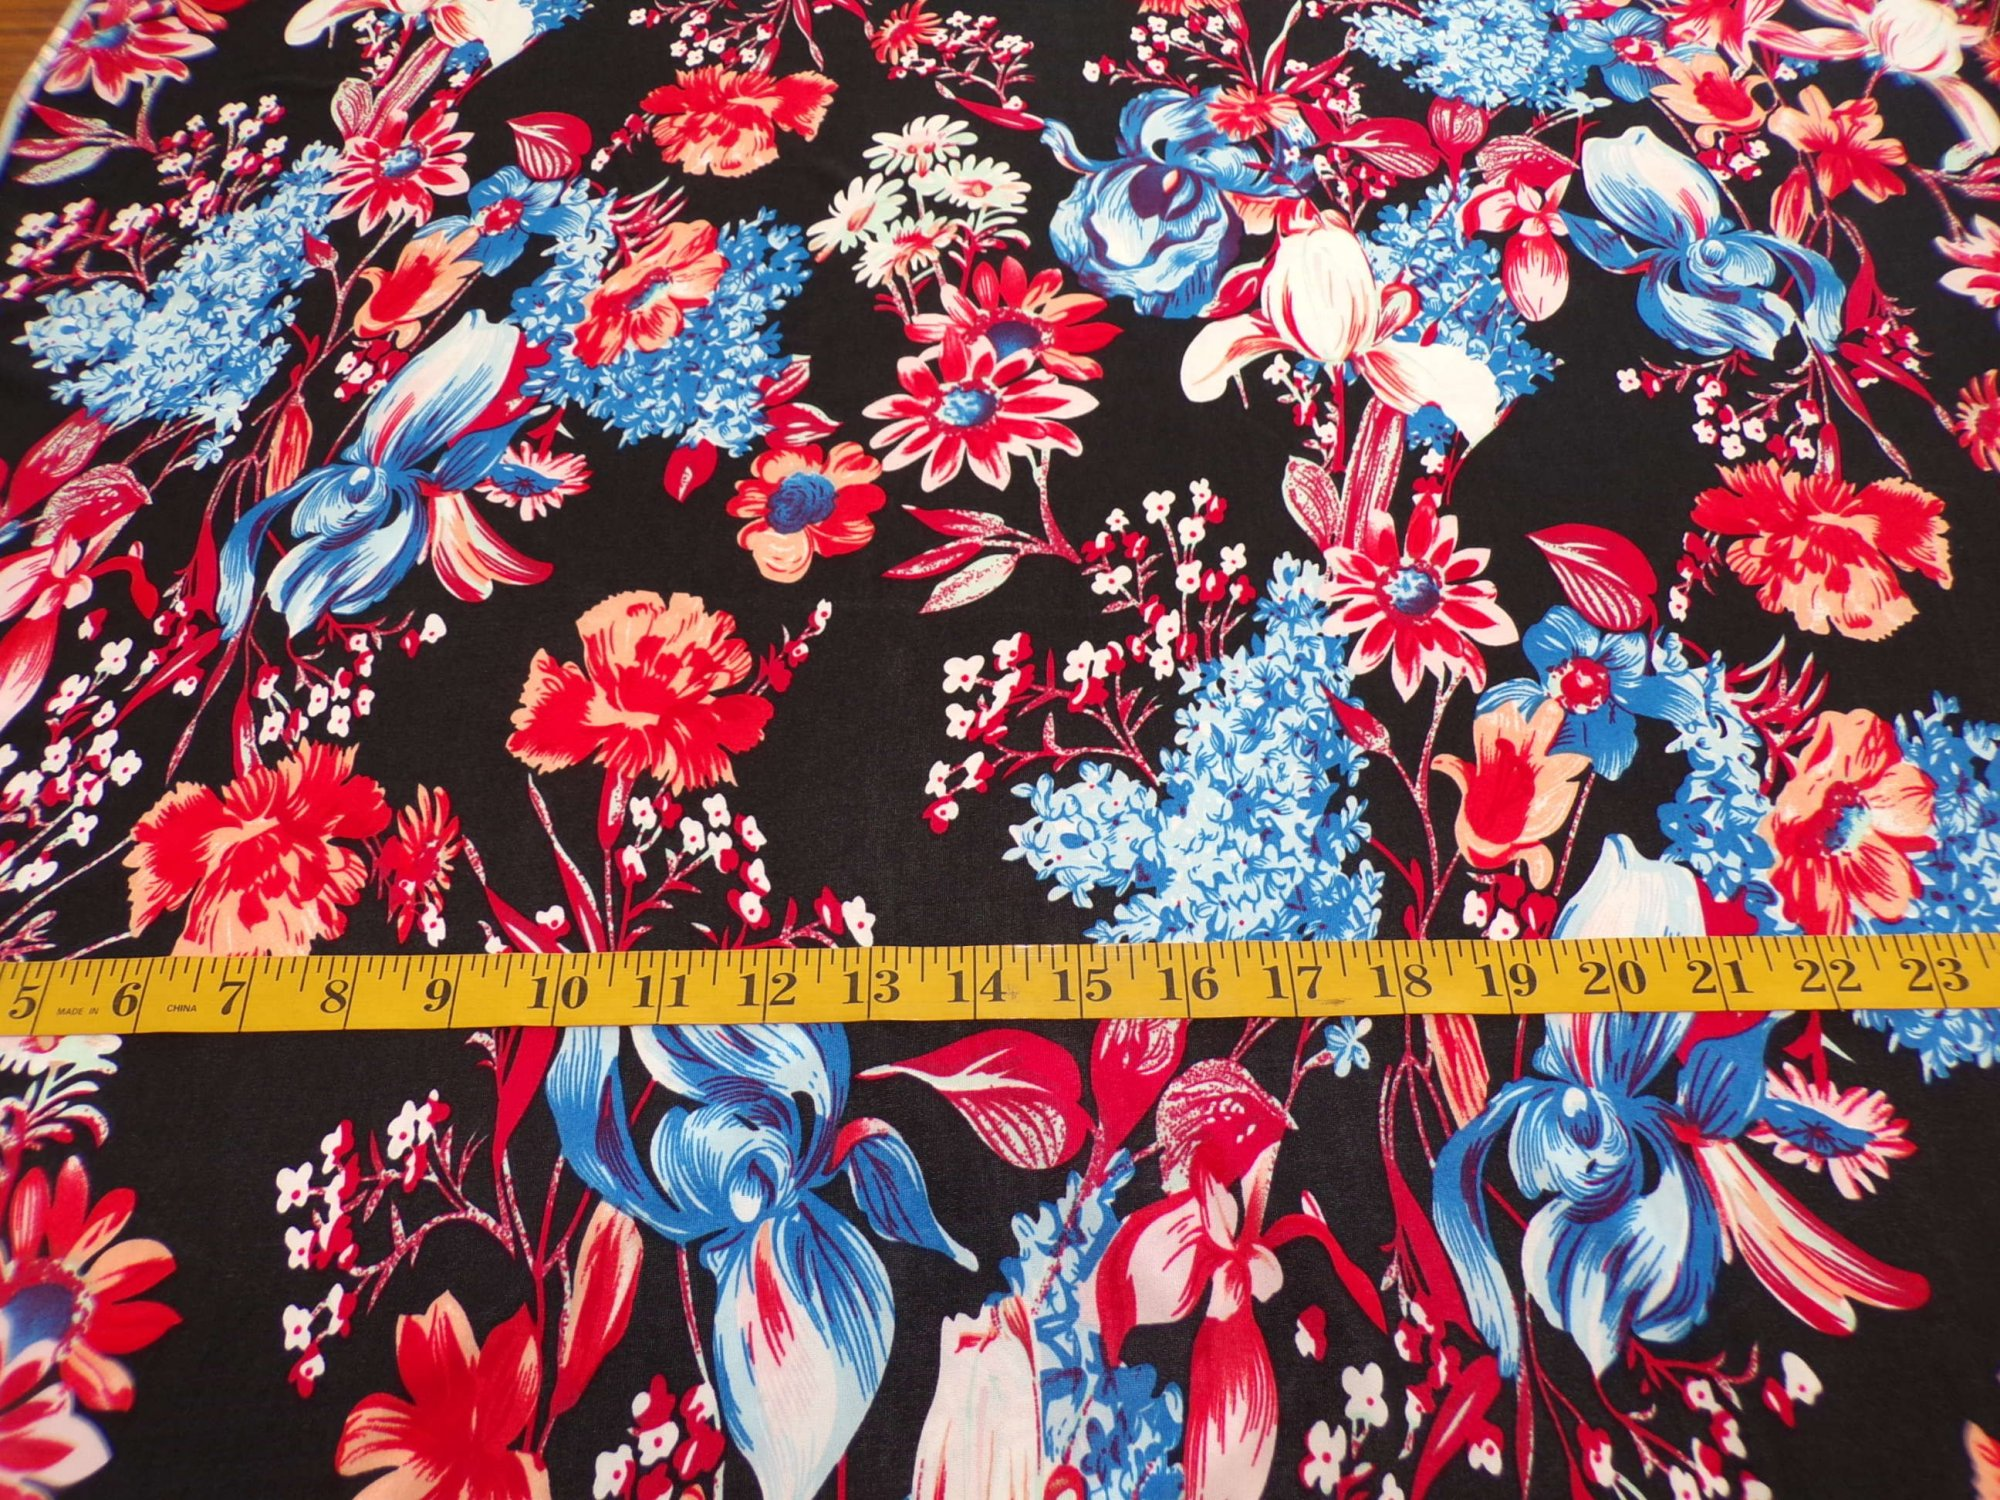 ITY Jersey - Black with Red White and Blue Flowers